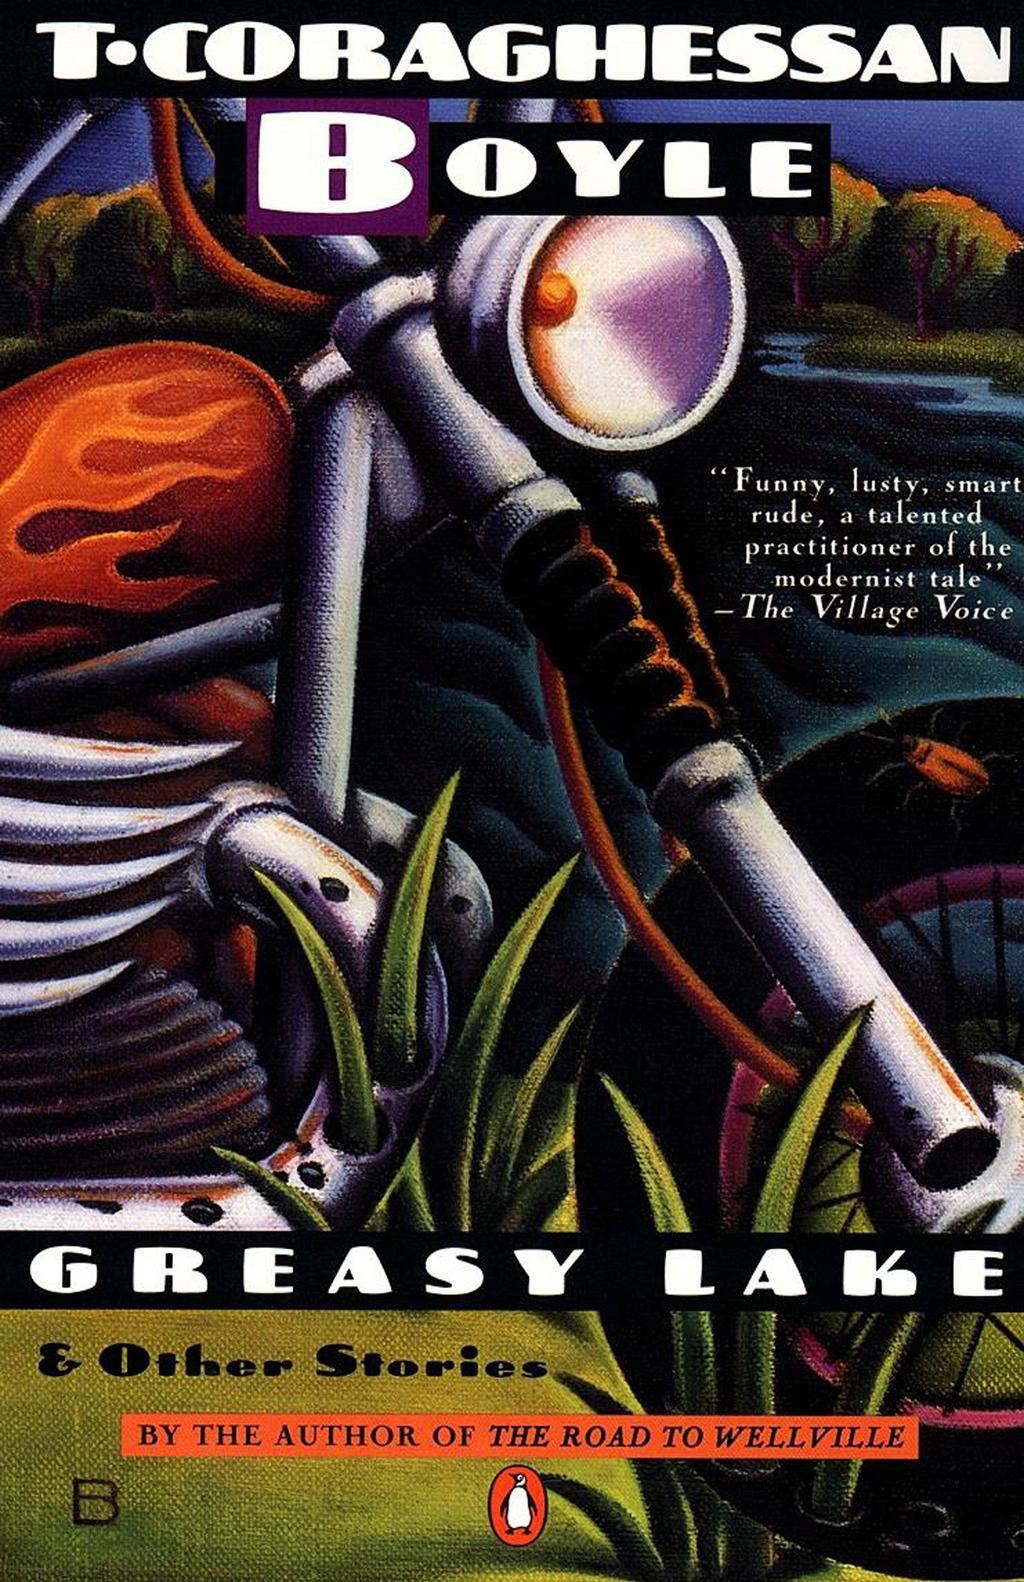 analysis of greasy lake by t. coraghessan boyle essay This article is written like a personal reflection or opinion essay that states greasy lake and other stories was an interview with t coraghessan boyle.